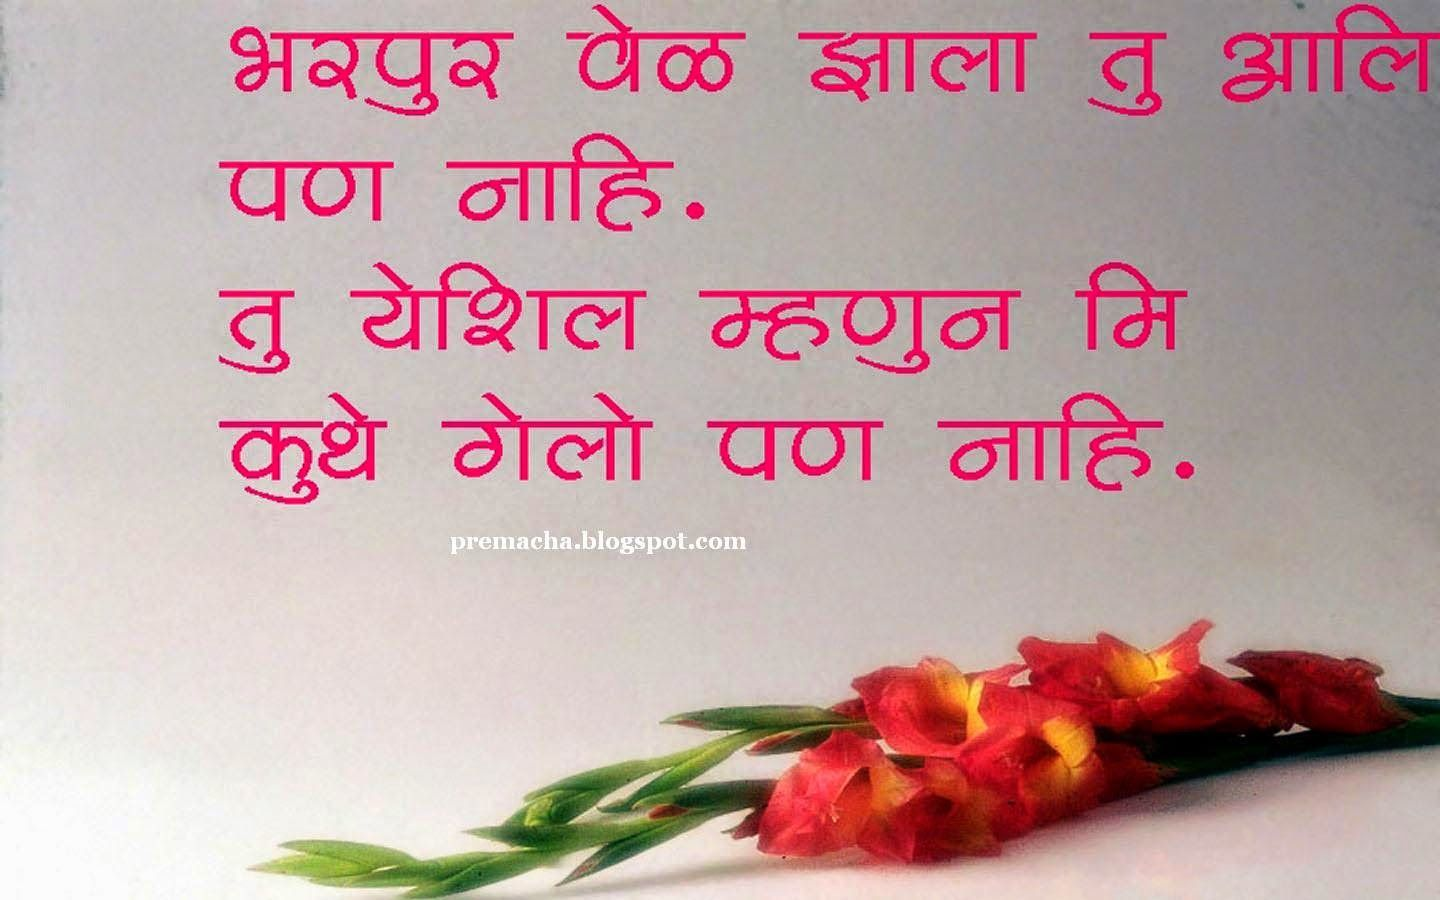 Sad Love Quotes For Her In Marathi T8jourvlo In Love Quotes Love